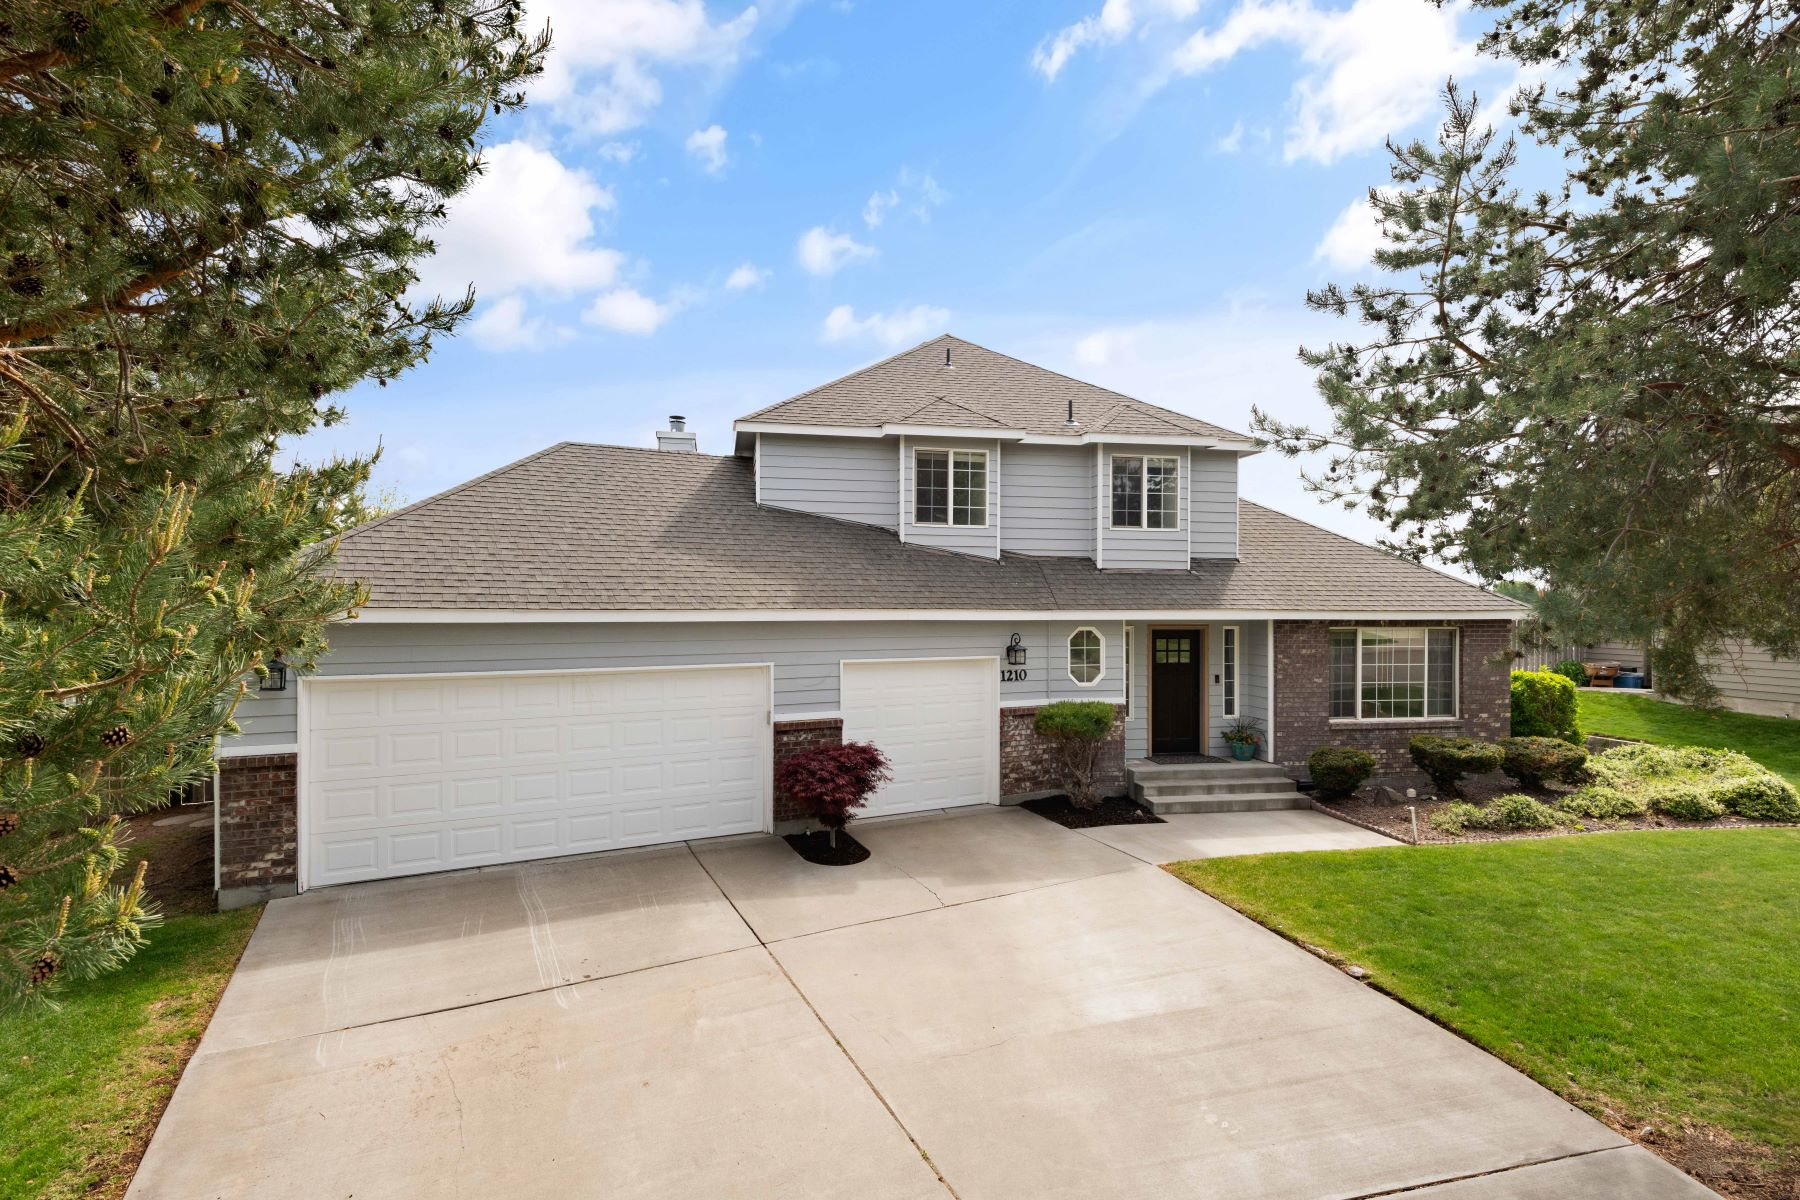 Single Family Homes for Sale at Views from All 3 Levels 1210 Oxford, Richland, Washington 99352 United States